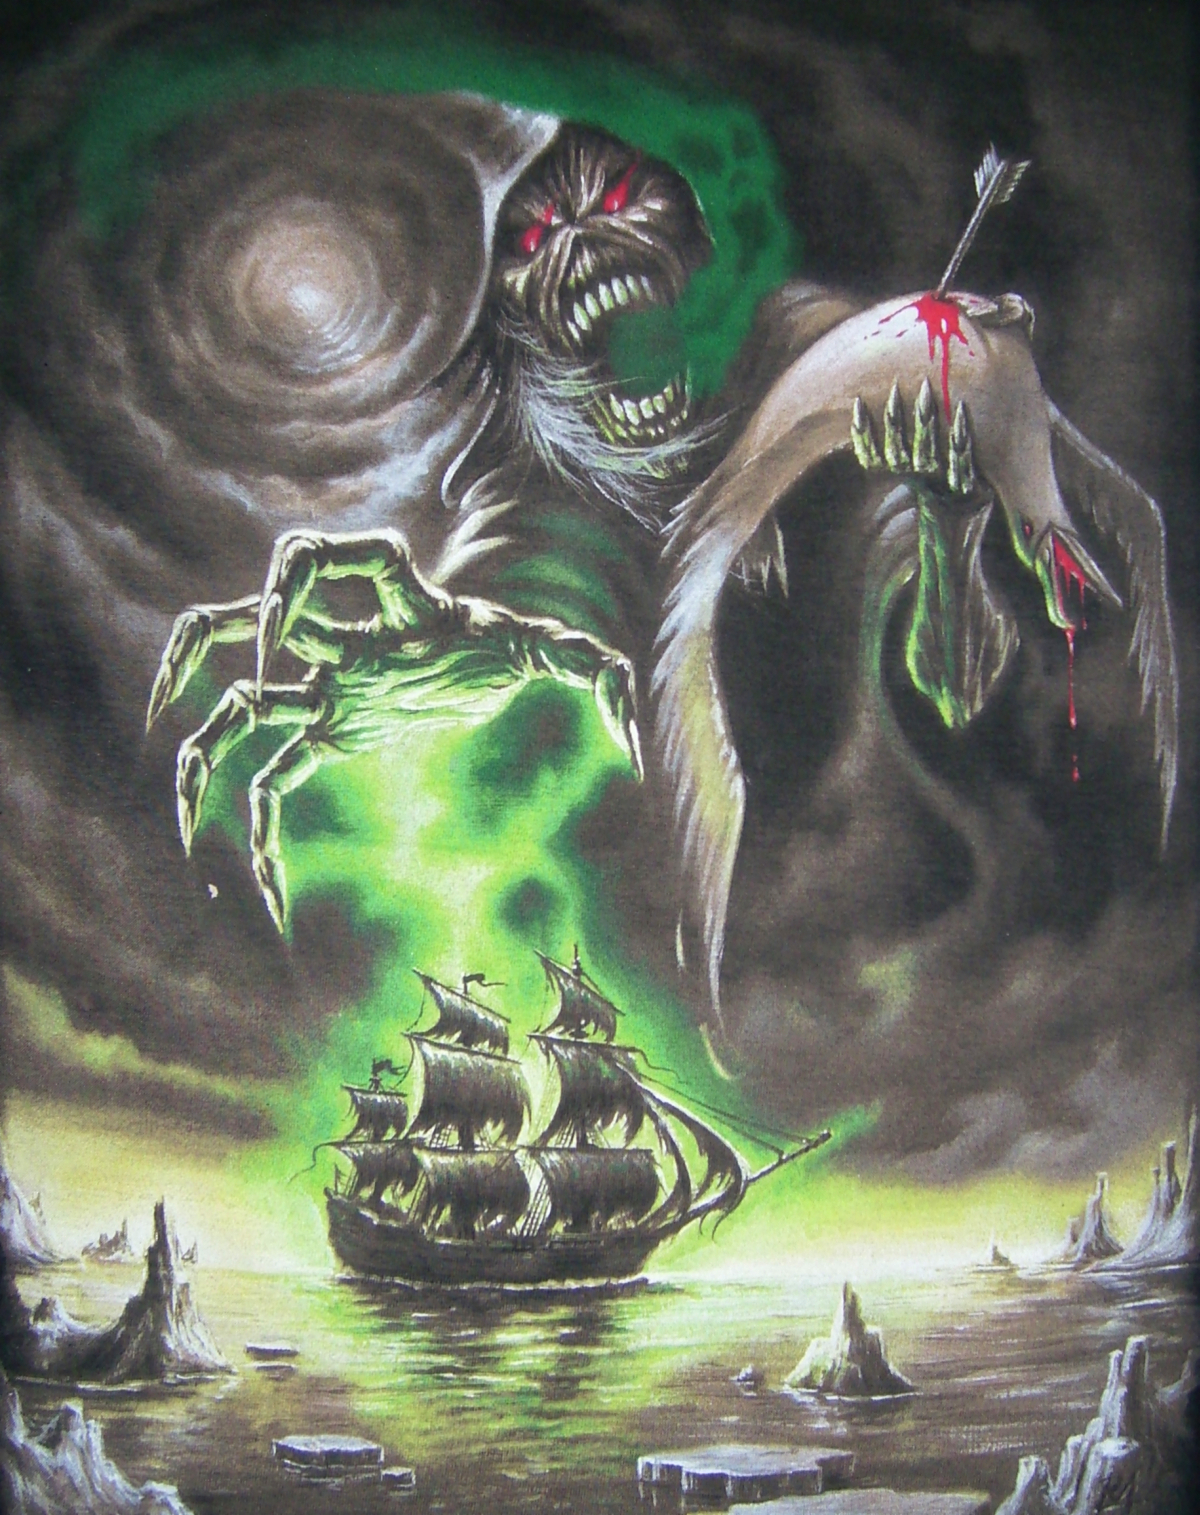 The-Rime-of-the-Ancient-Mariner-iron-maiden-8710742-1200-1515